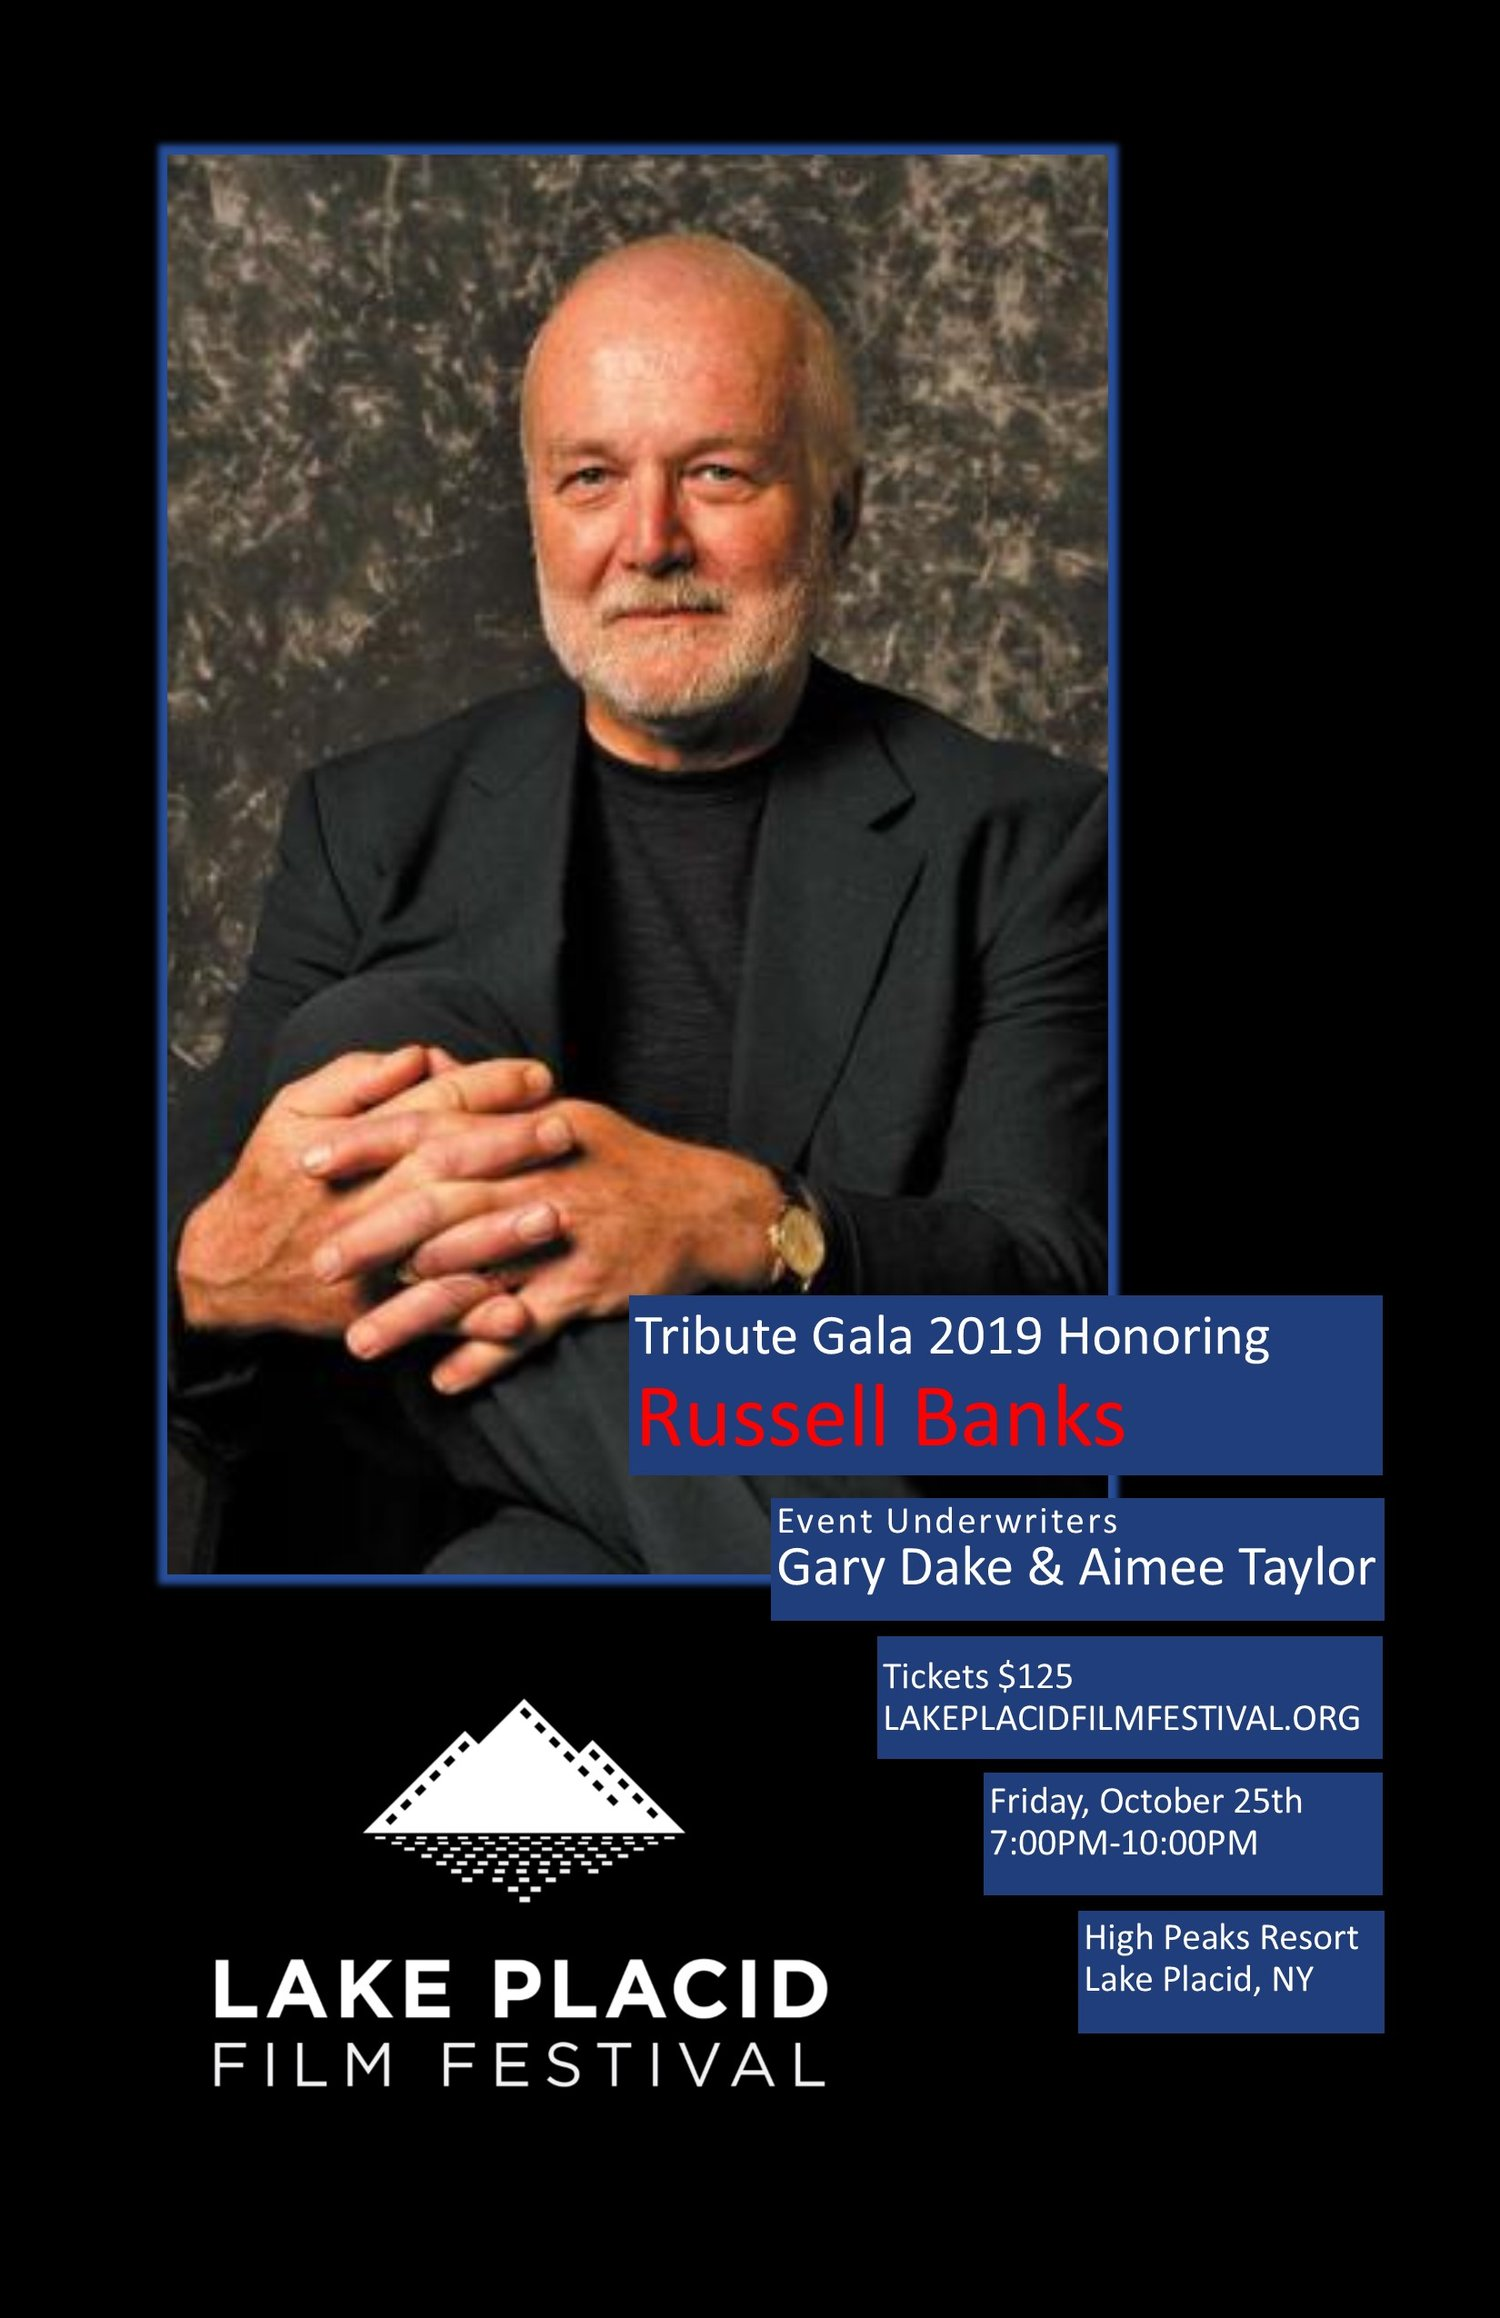 Tribute+Gala+2019+Russell+Banks+Poster+11x17.jpg